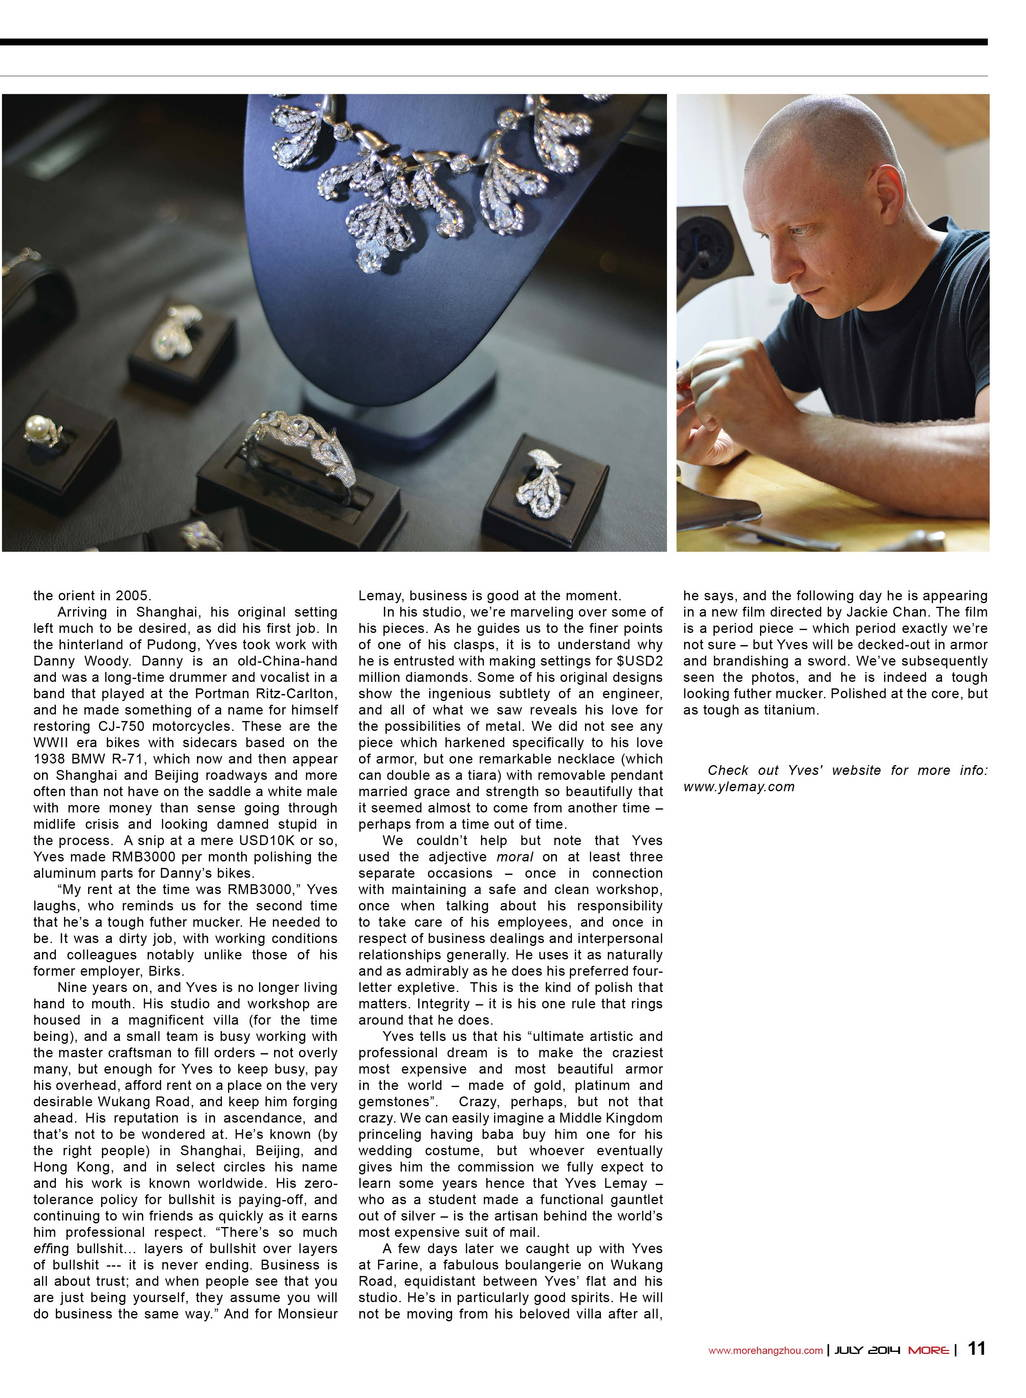 Yves Lemay Media Publication interview for hangzhouvian